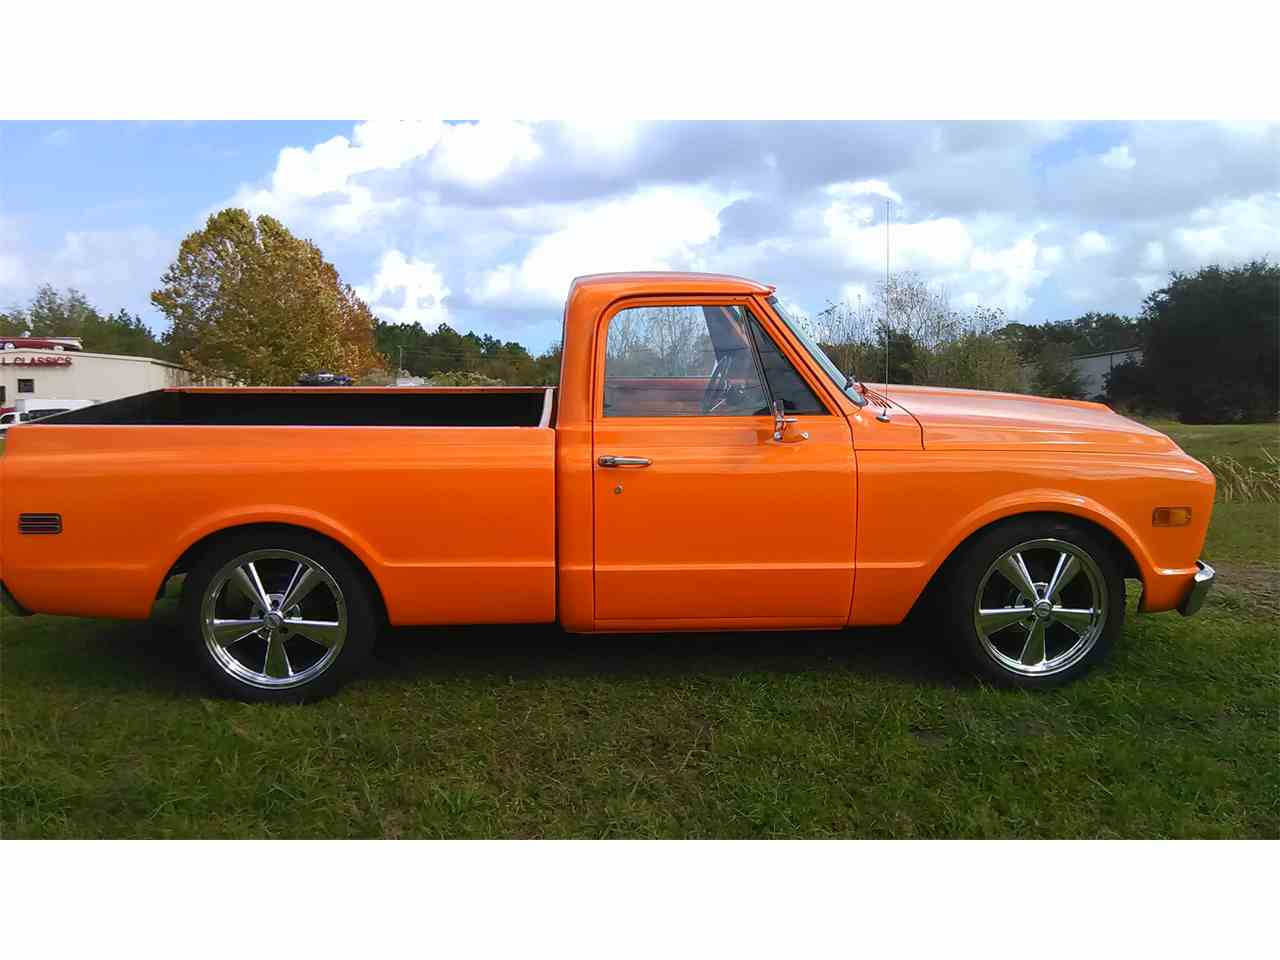 Large Picture of 1968 Chevrolet C/K 10 located in PONTE VEDRA Florida - $14,999.00 Offered by S & L Classics - JVED